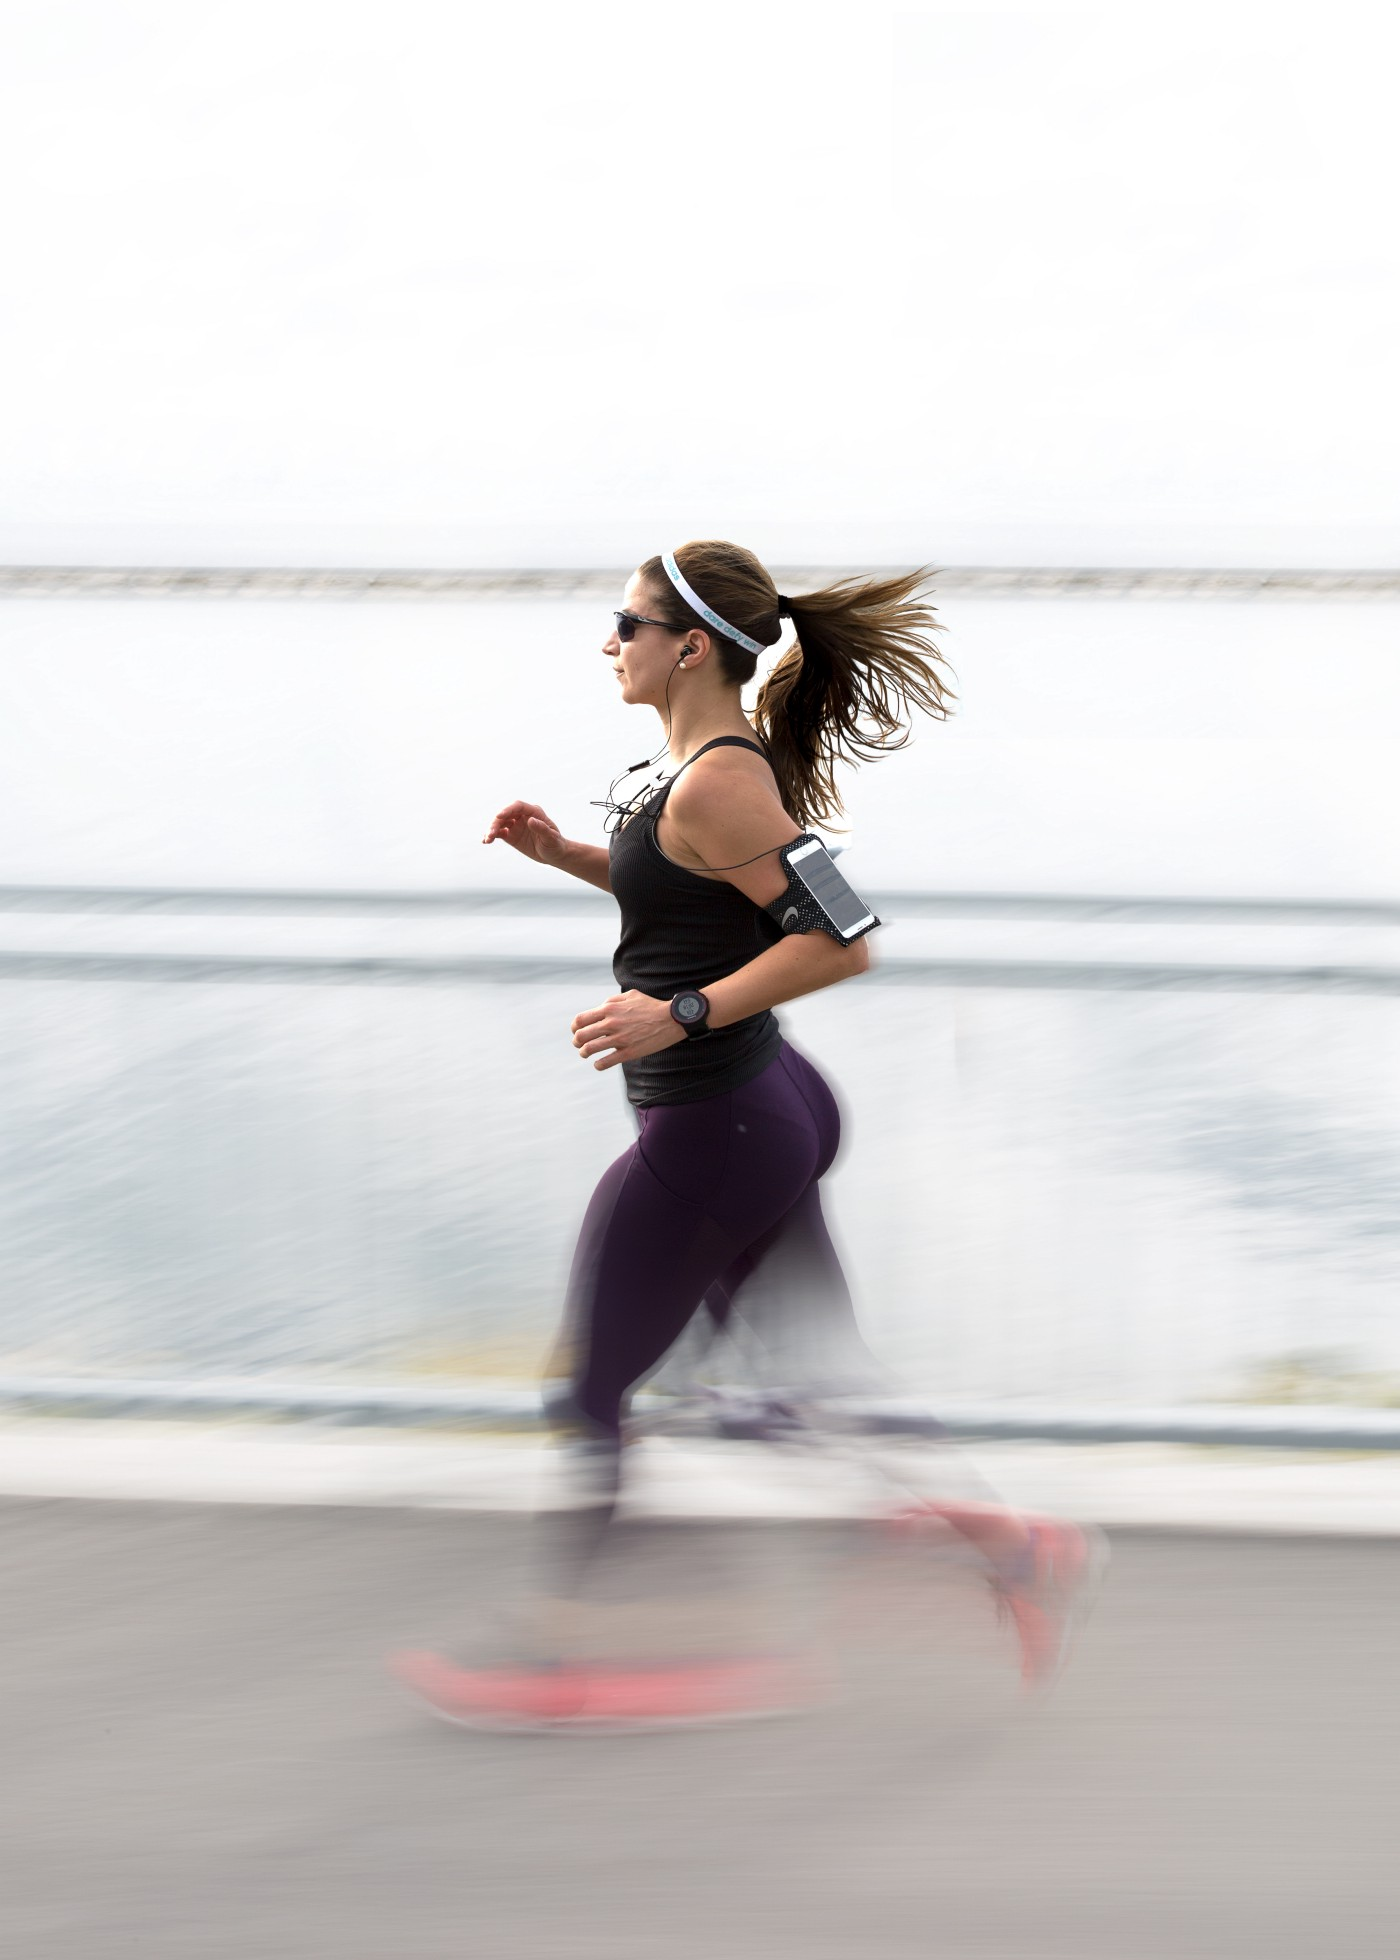 A photograph of a woman running alongside water, wearing sunglasses and a watch, with a phone strapped to her arm.